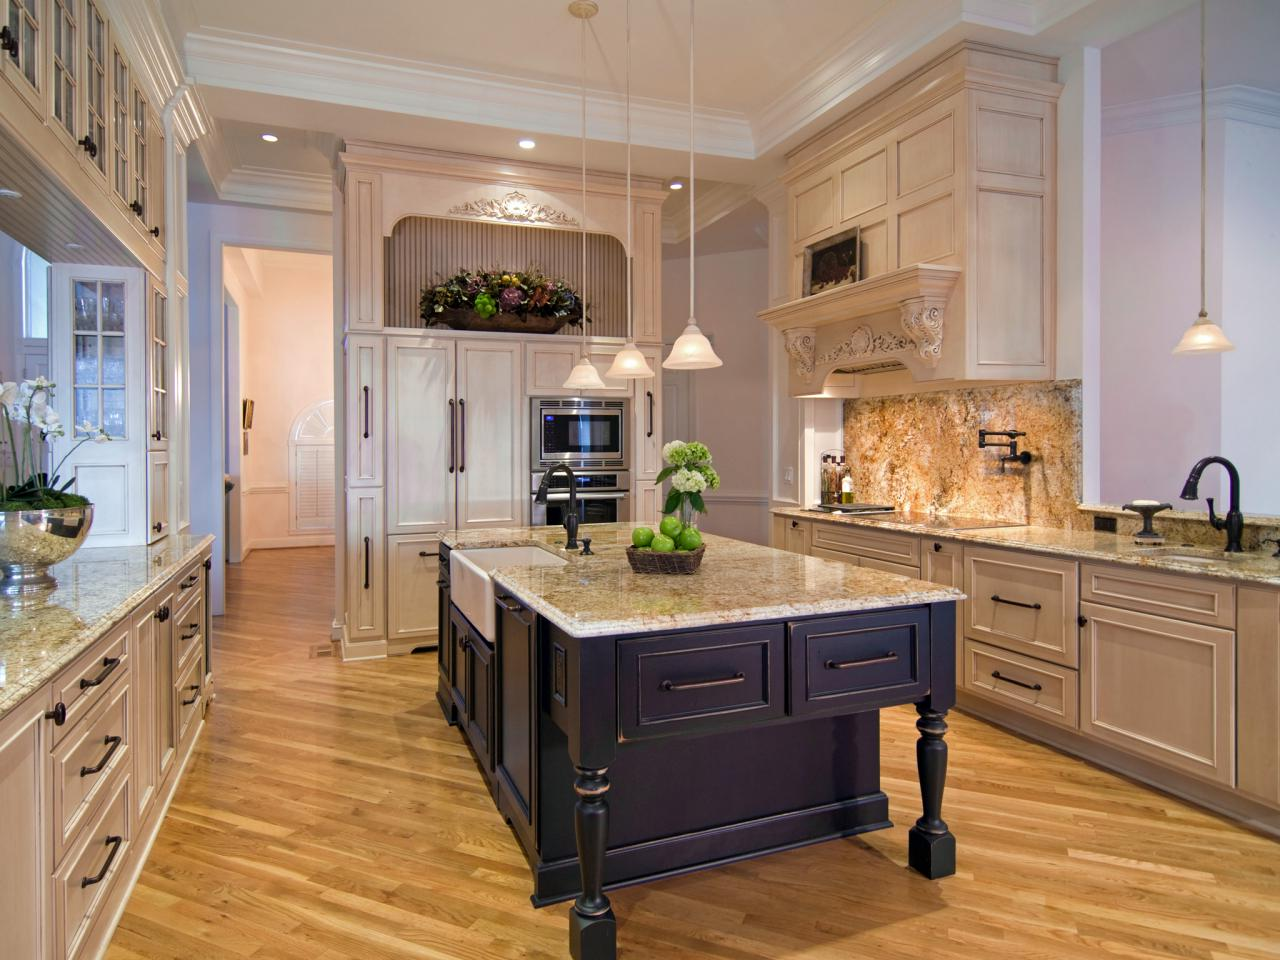 Older Home Kitchen Remodeling Ideas | Roy Home Design on Kitchen Remodel Ideas  id=21841